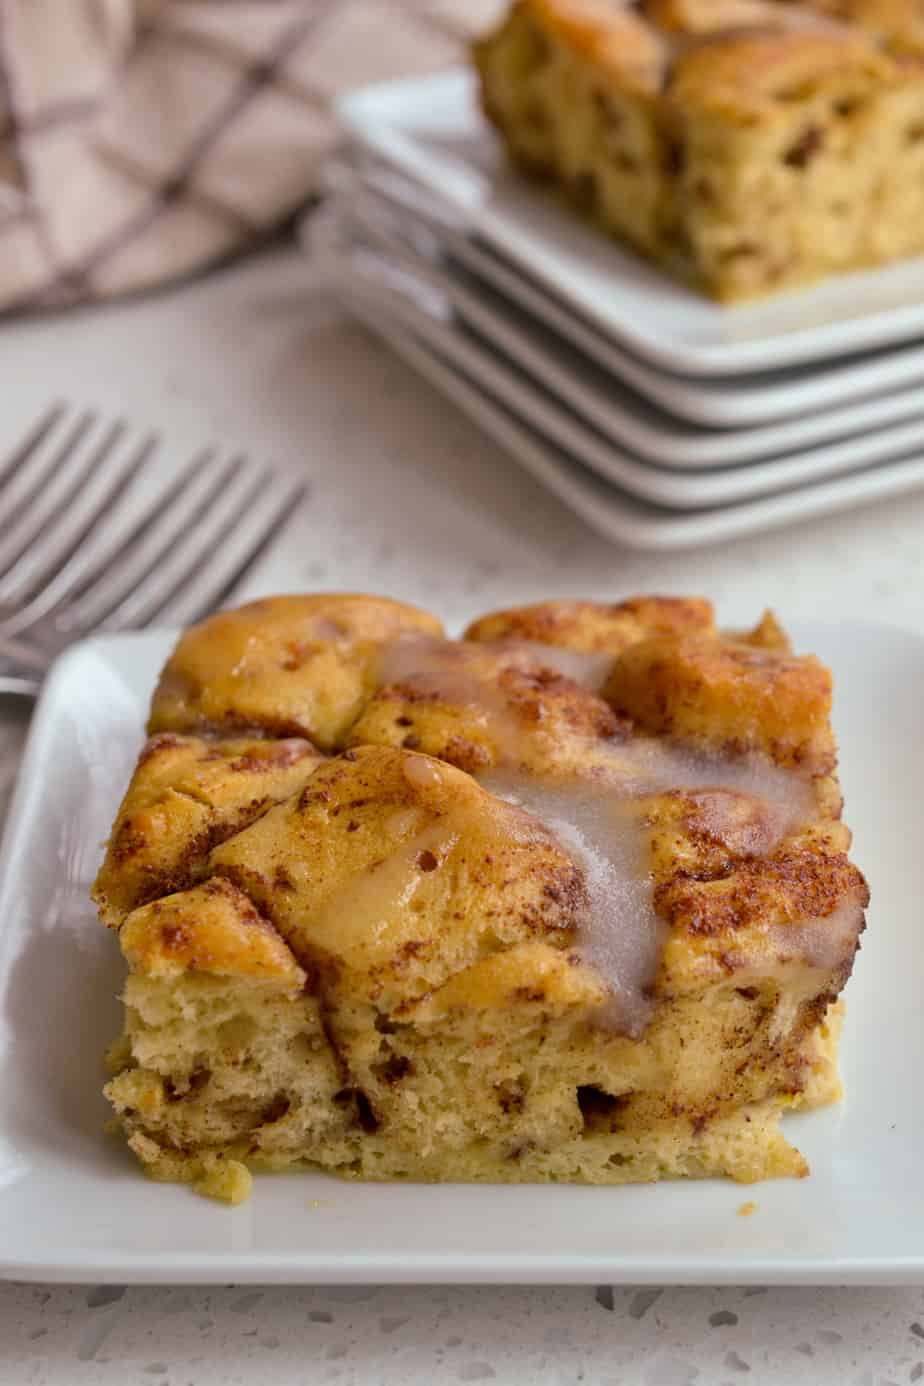 Refrigerated Cinnamon Rolls are combined with eggs and spices and baked.